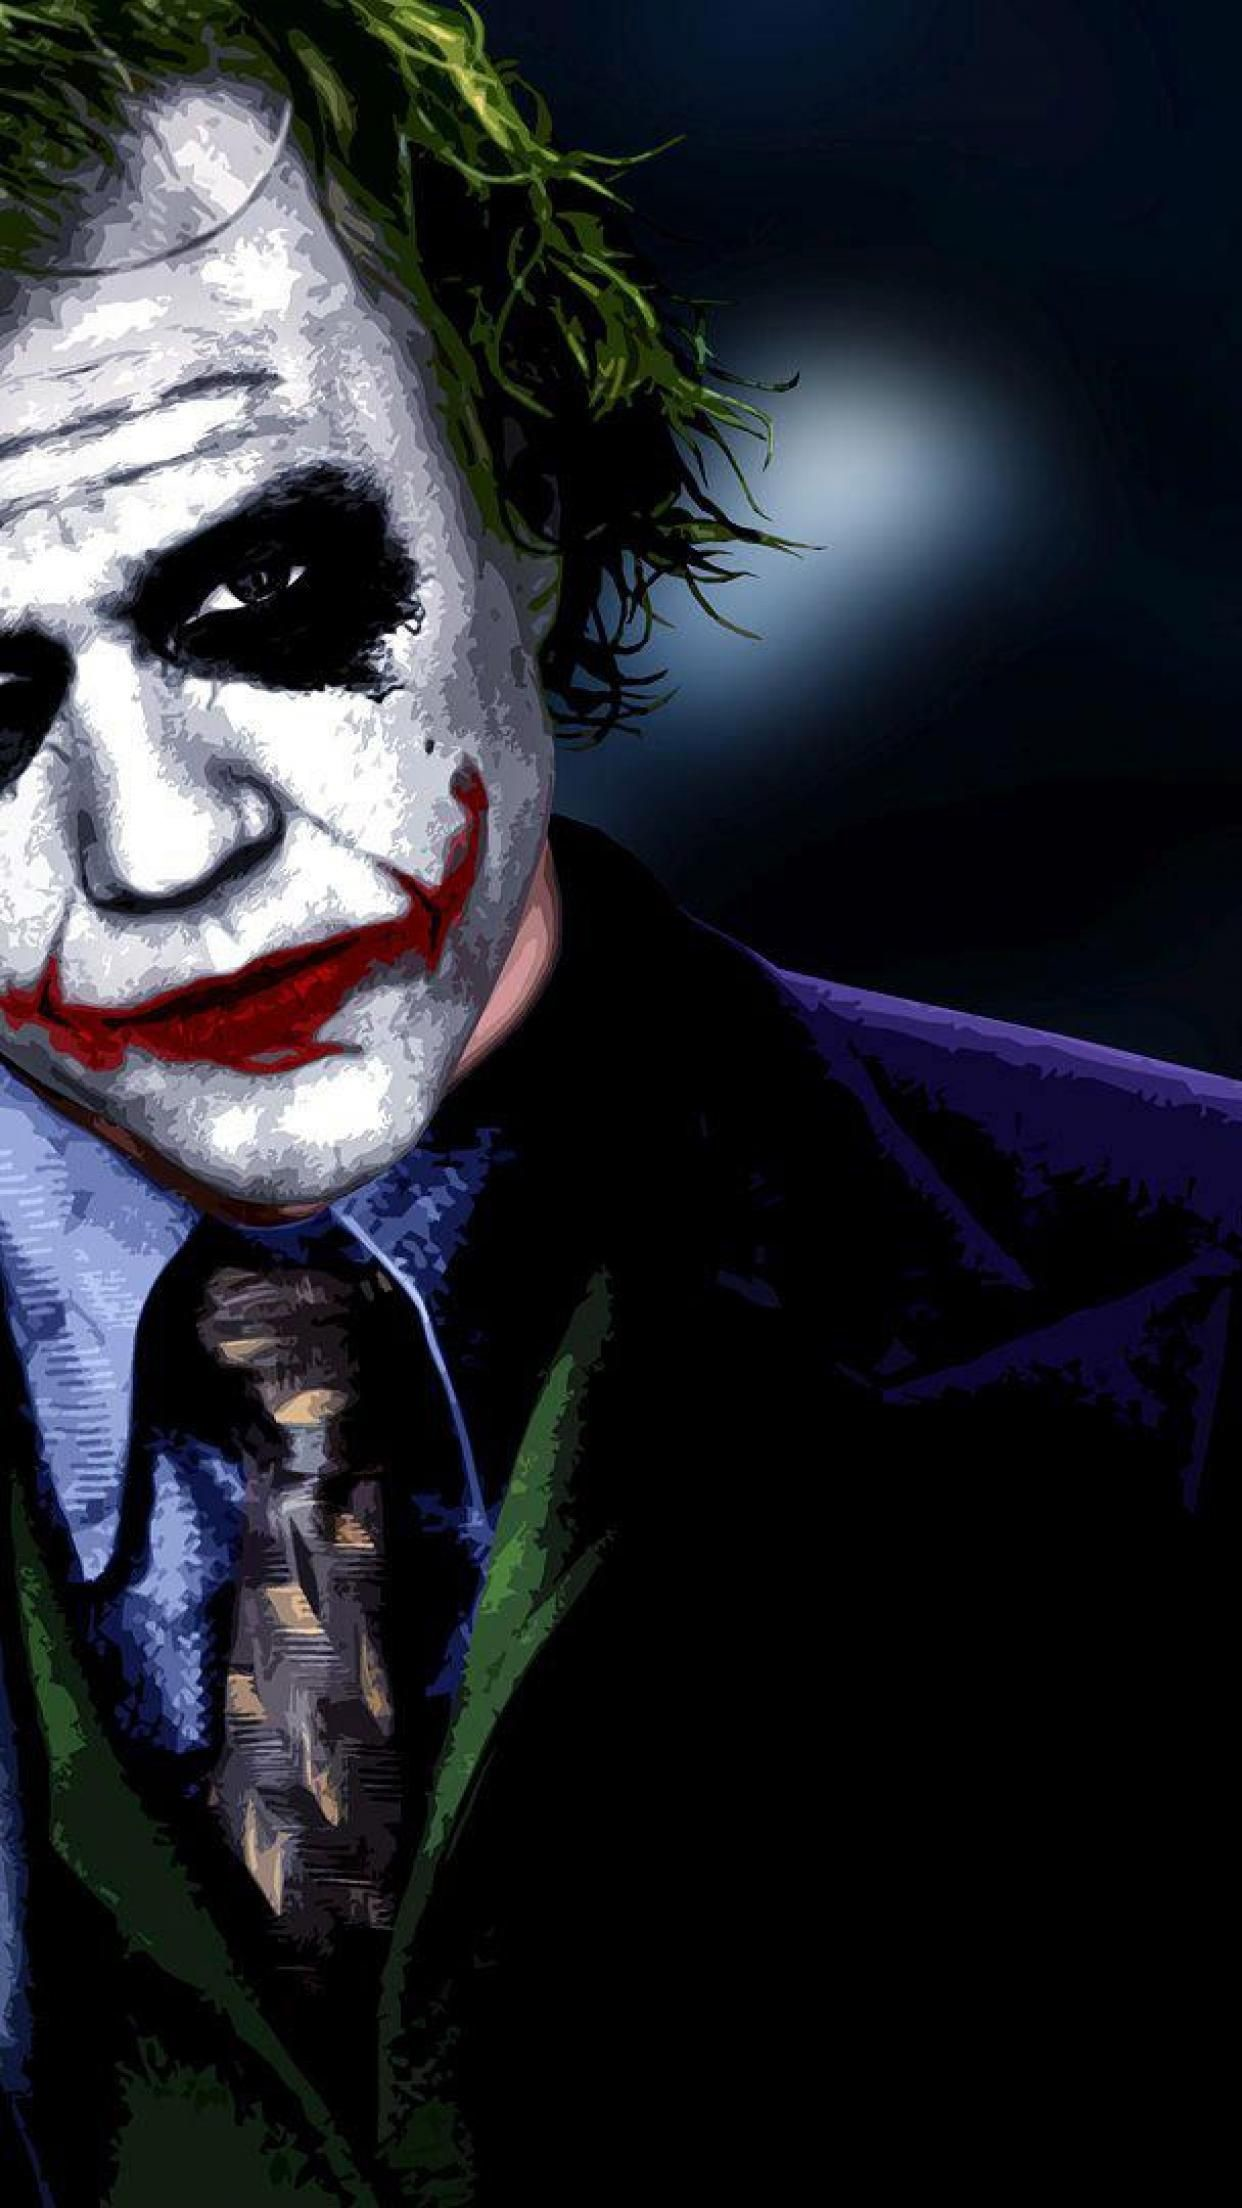 3d Clown Wallpaper Scary Joker Wallpapers 69 Background Pictures